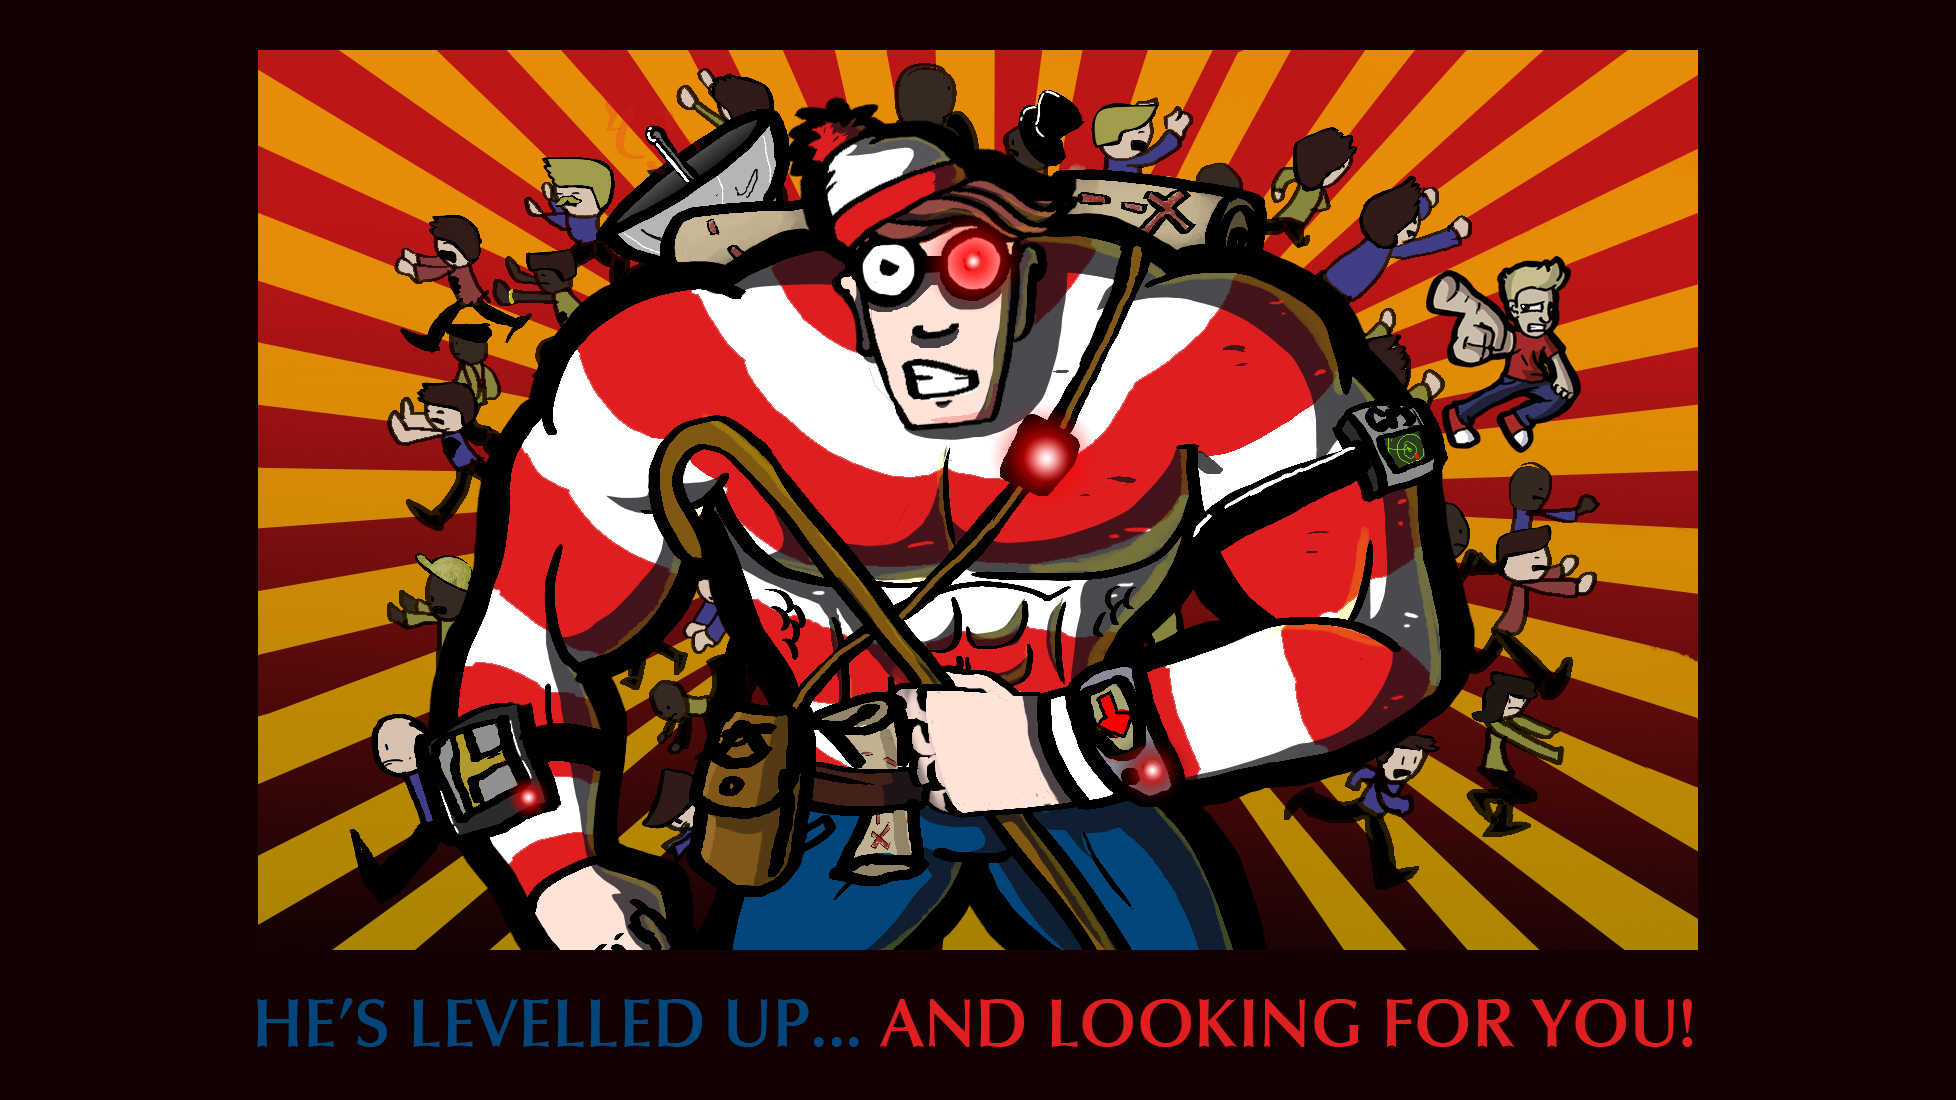 He's Levelled Up And Looking For You!